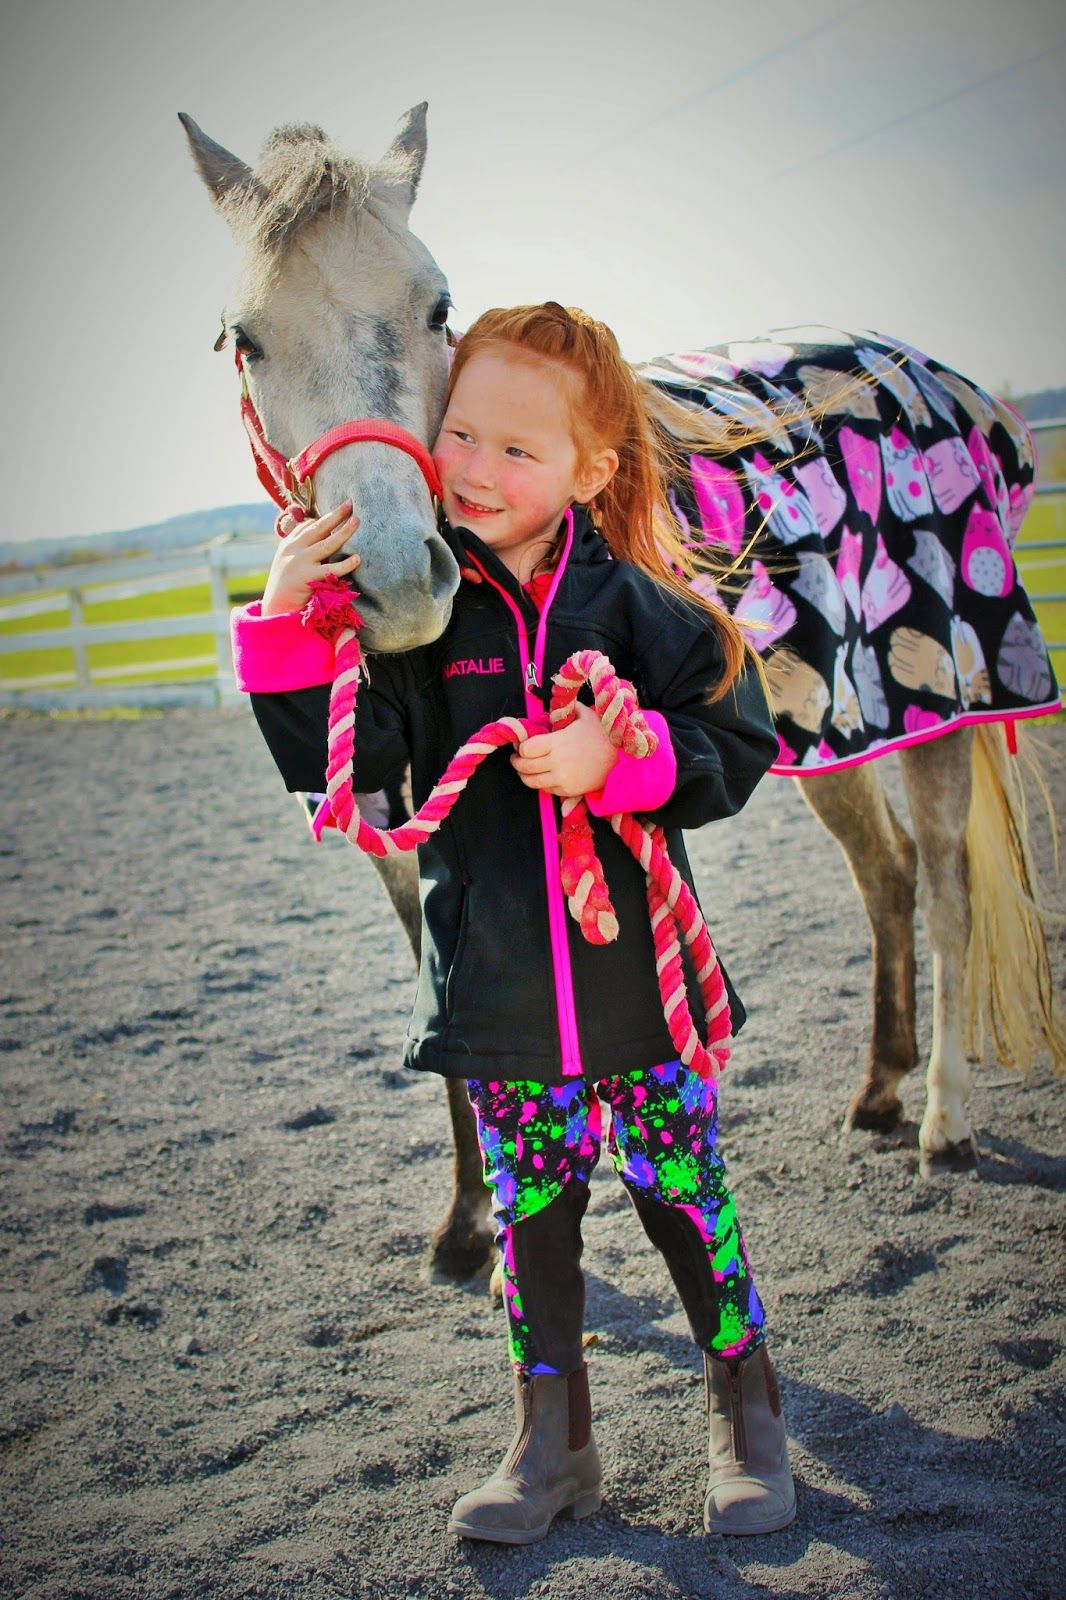 The Pink Pony: The (FUN) schooling tight has finally arrived...